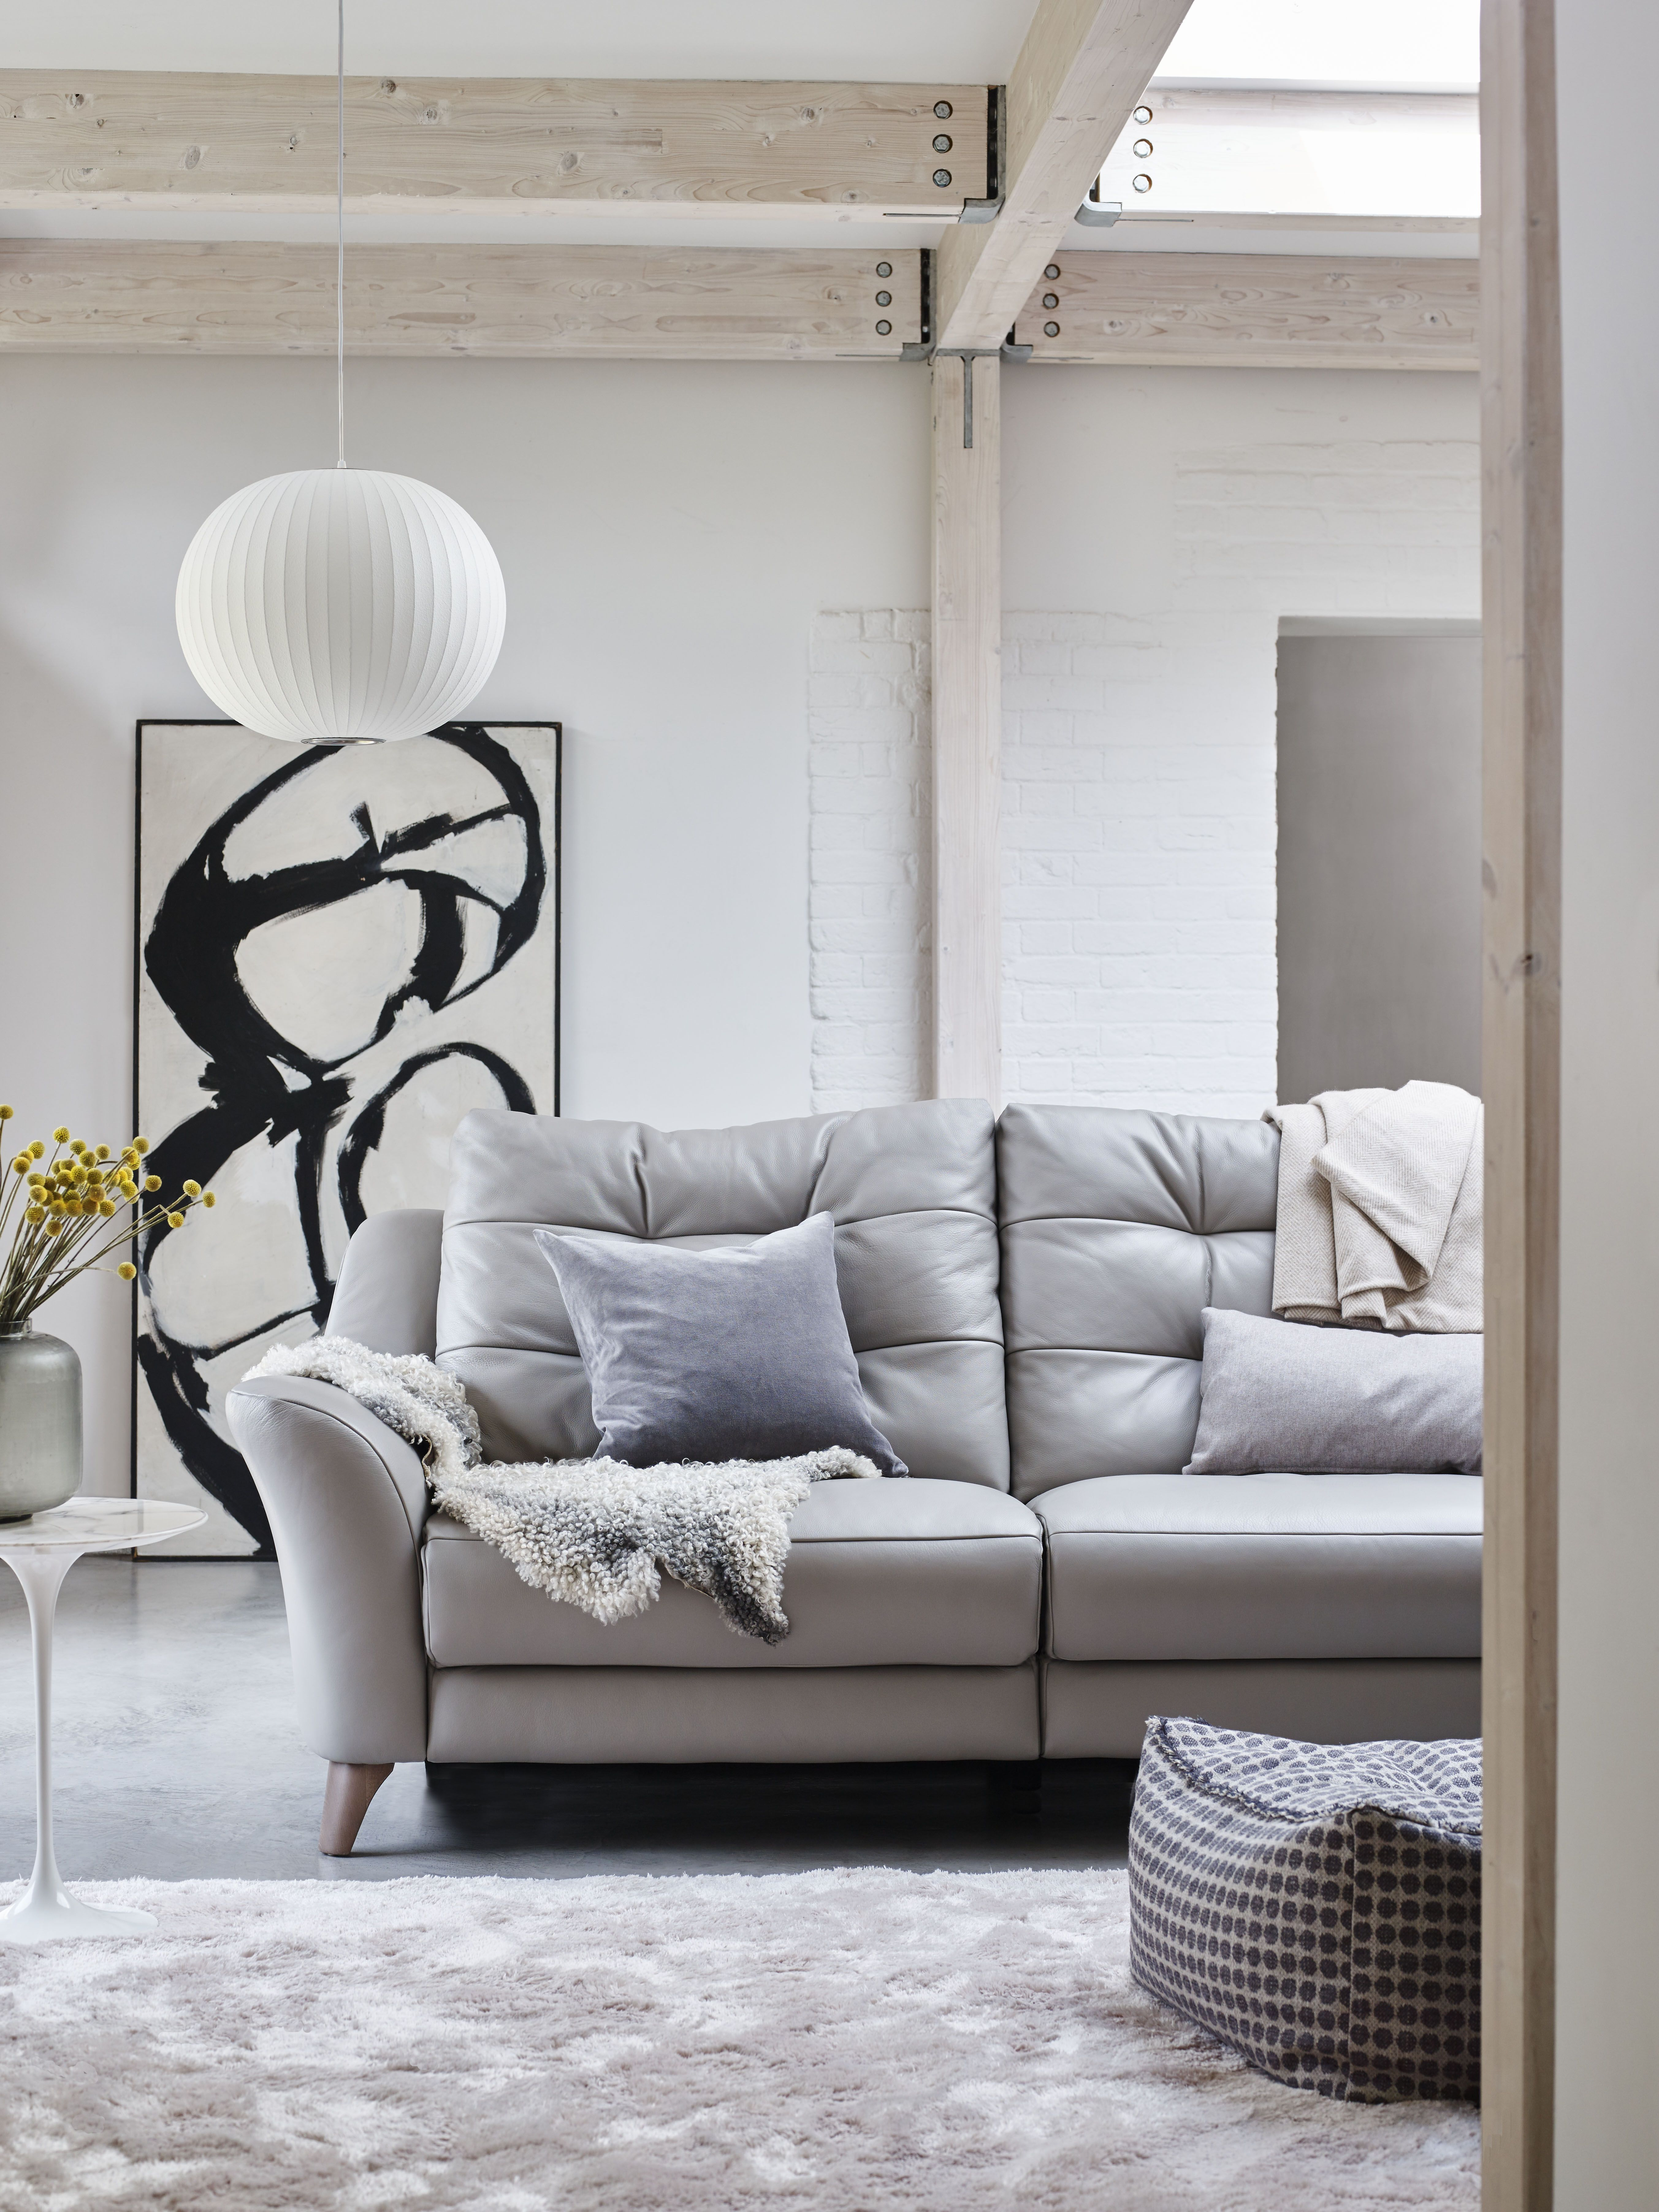 plan pip seater sofa in dreams cygnet leather home interiors style also rh pinterest